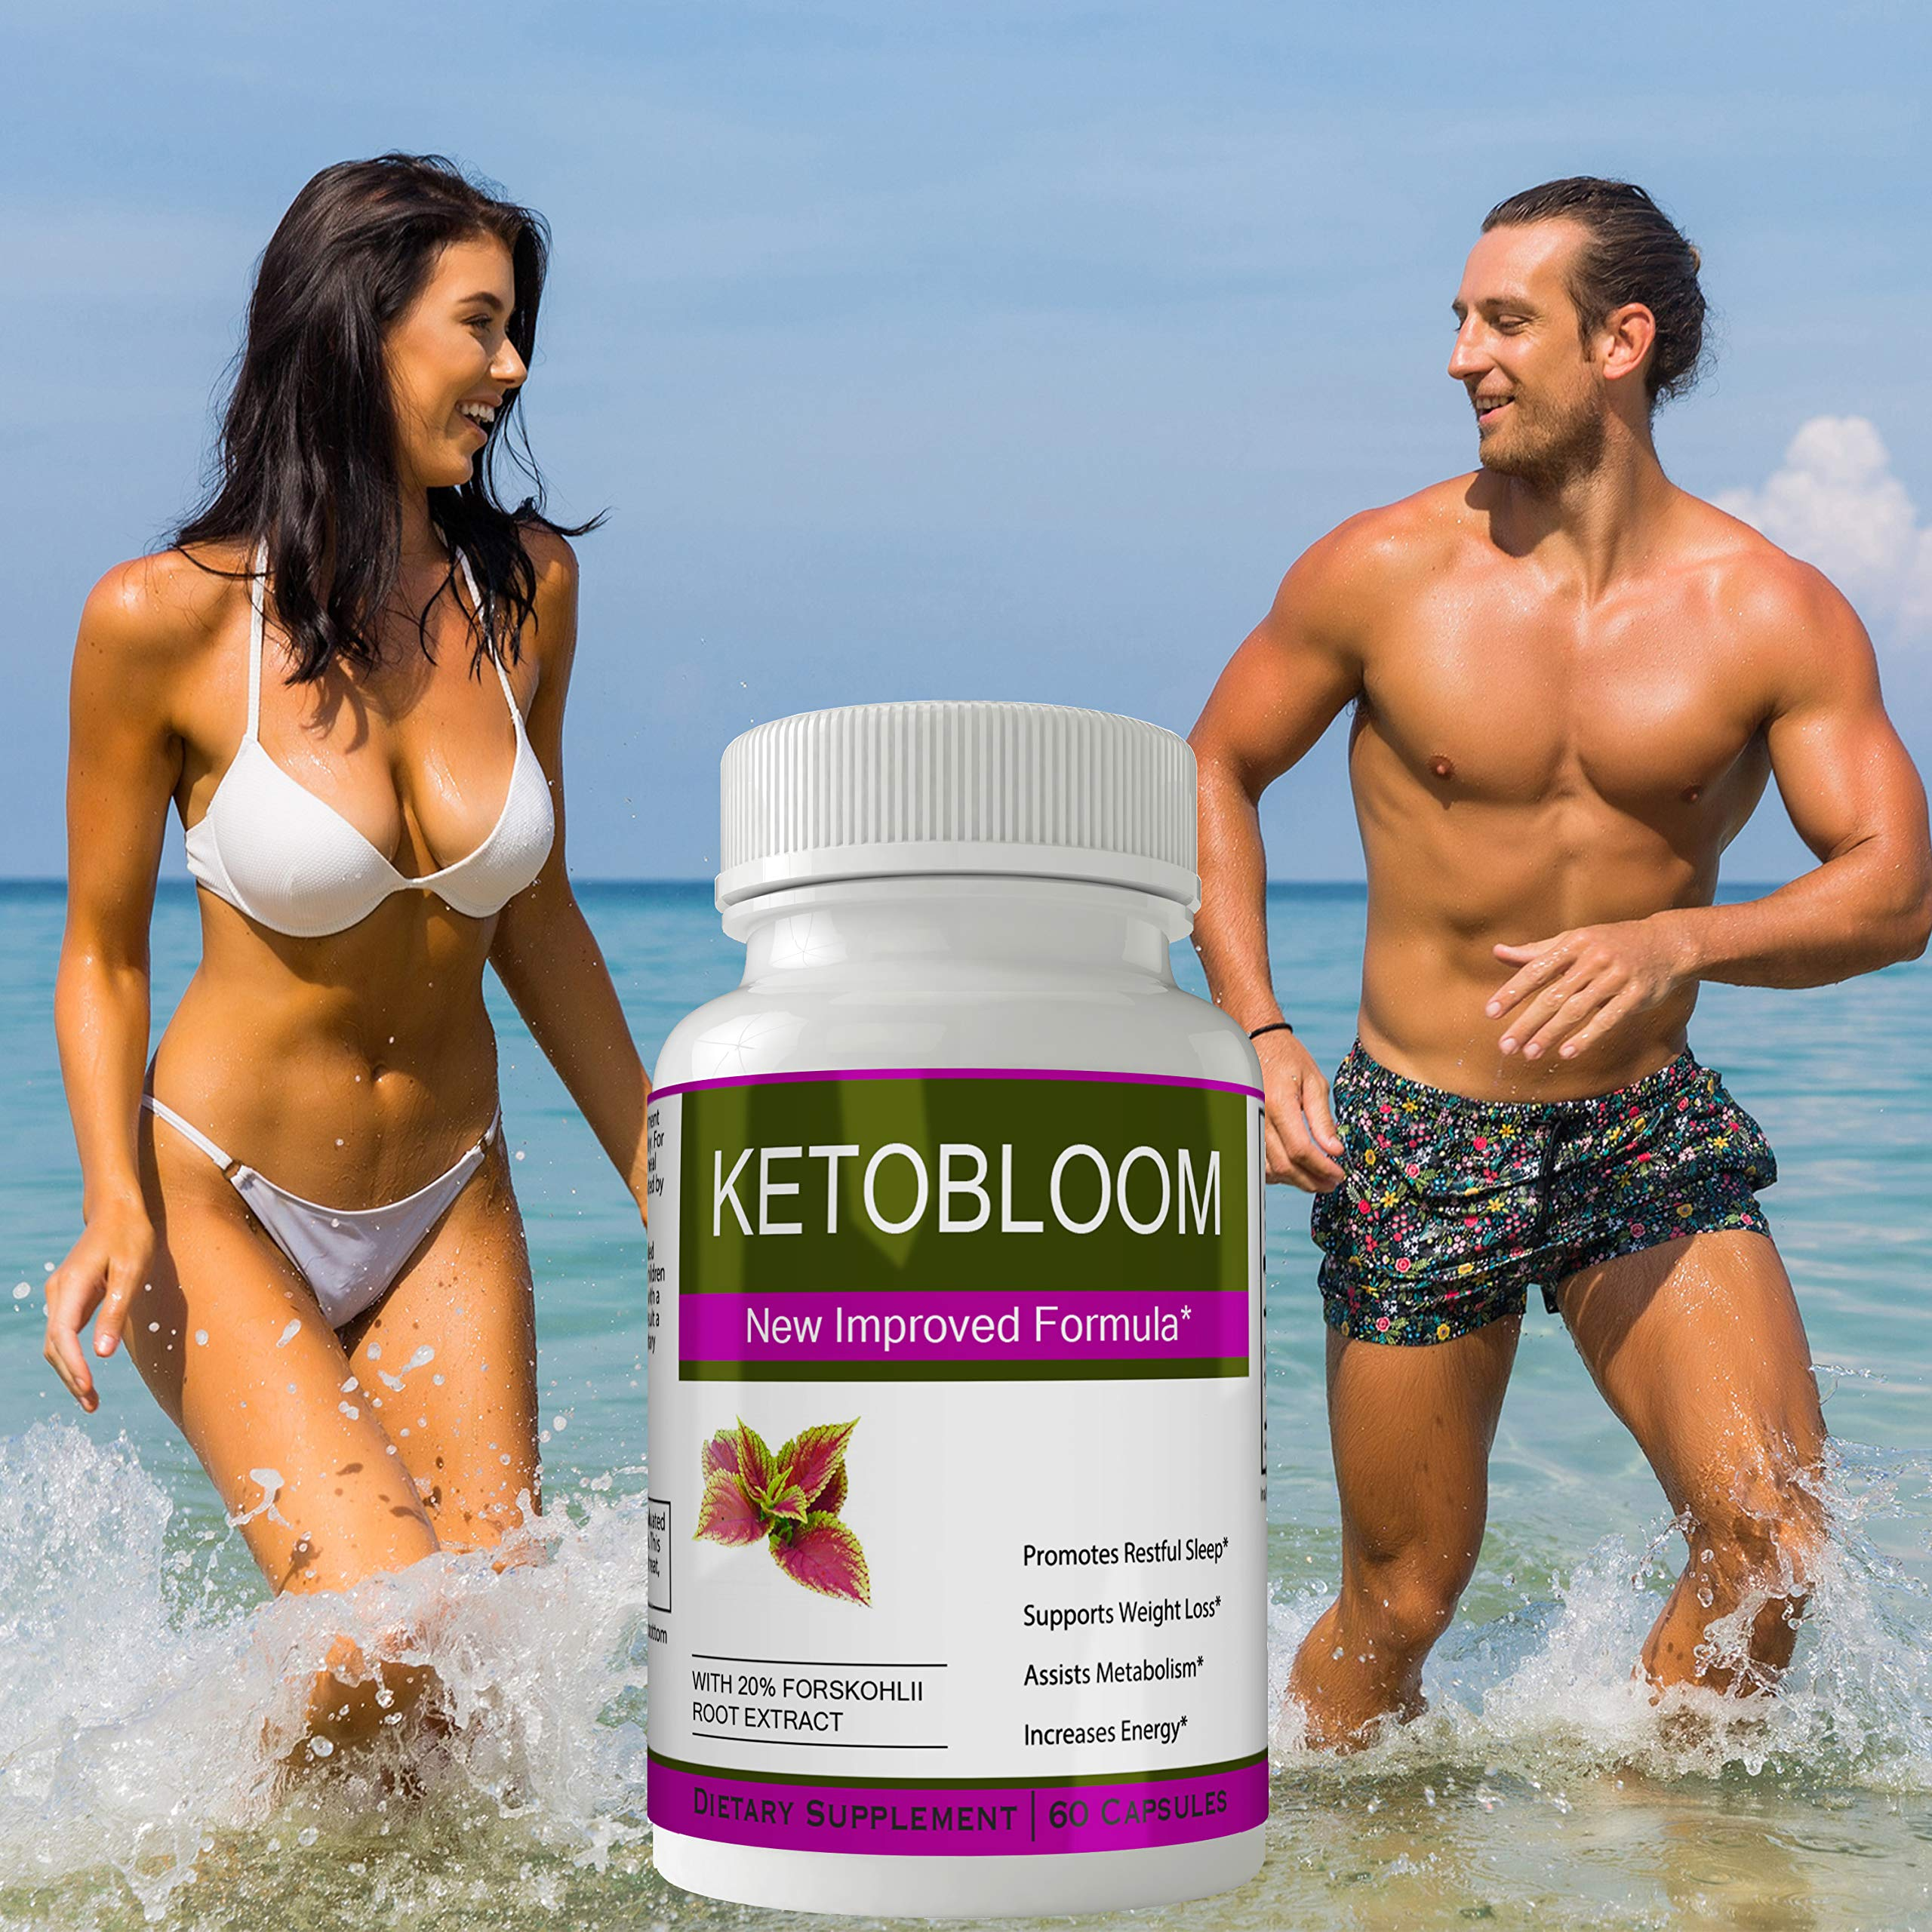 Ketobloom Forskolin for Weight Loss Diet Pills Supplement Capsules with Premium Forskolin Extract Tablets   Keto Bloom High Quality Natural Weightloss by nutra4health LLC (Image #4)